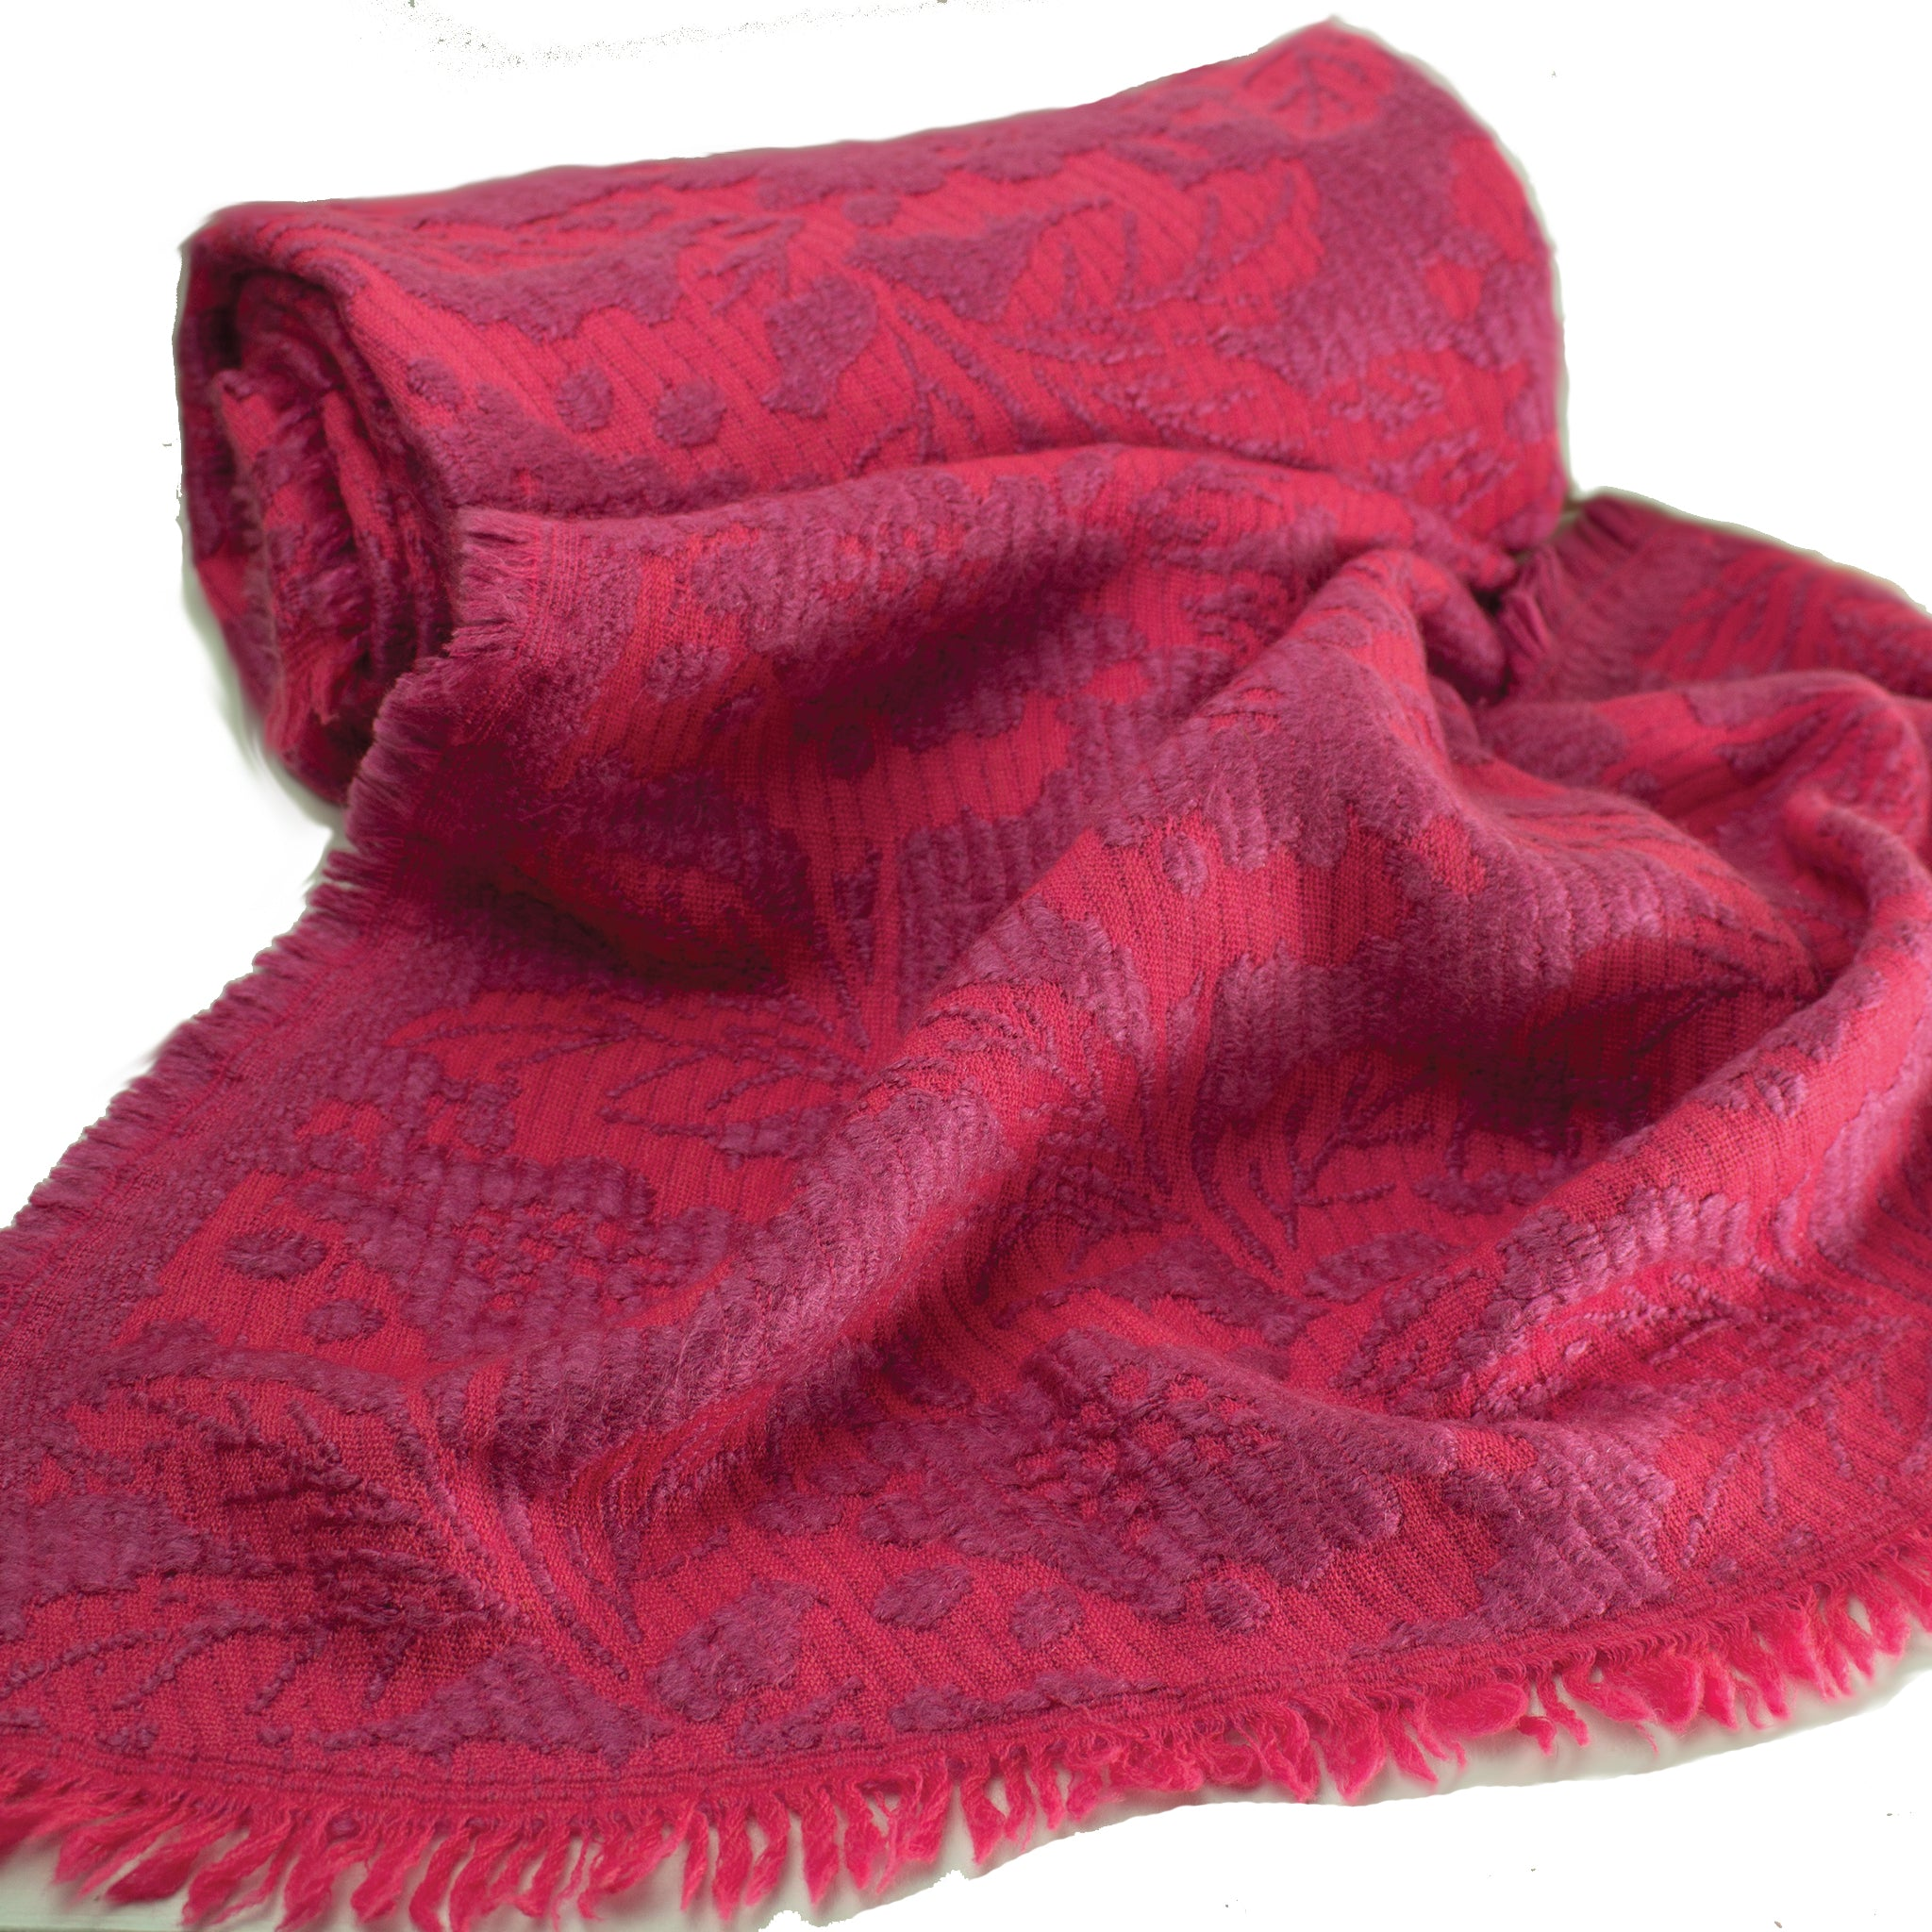 ne Quittez pas - Pink wrap / throw with lavender soft brocade Wool